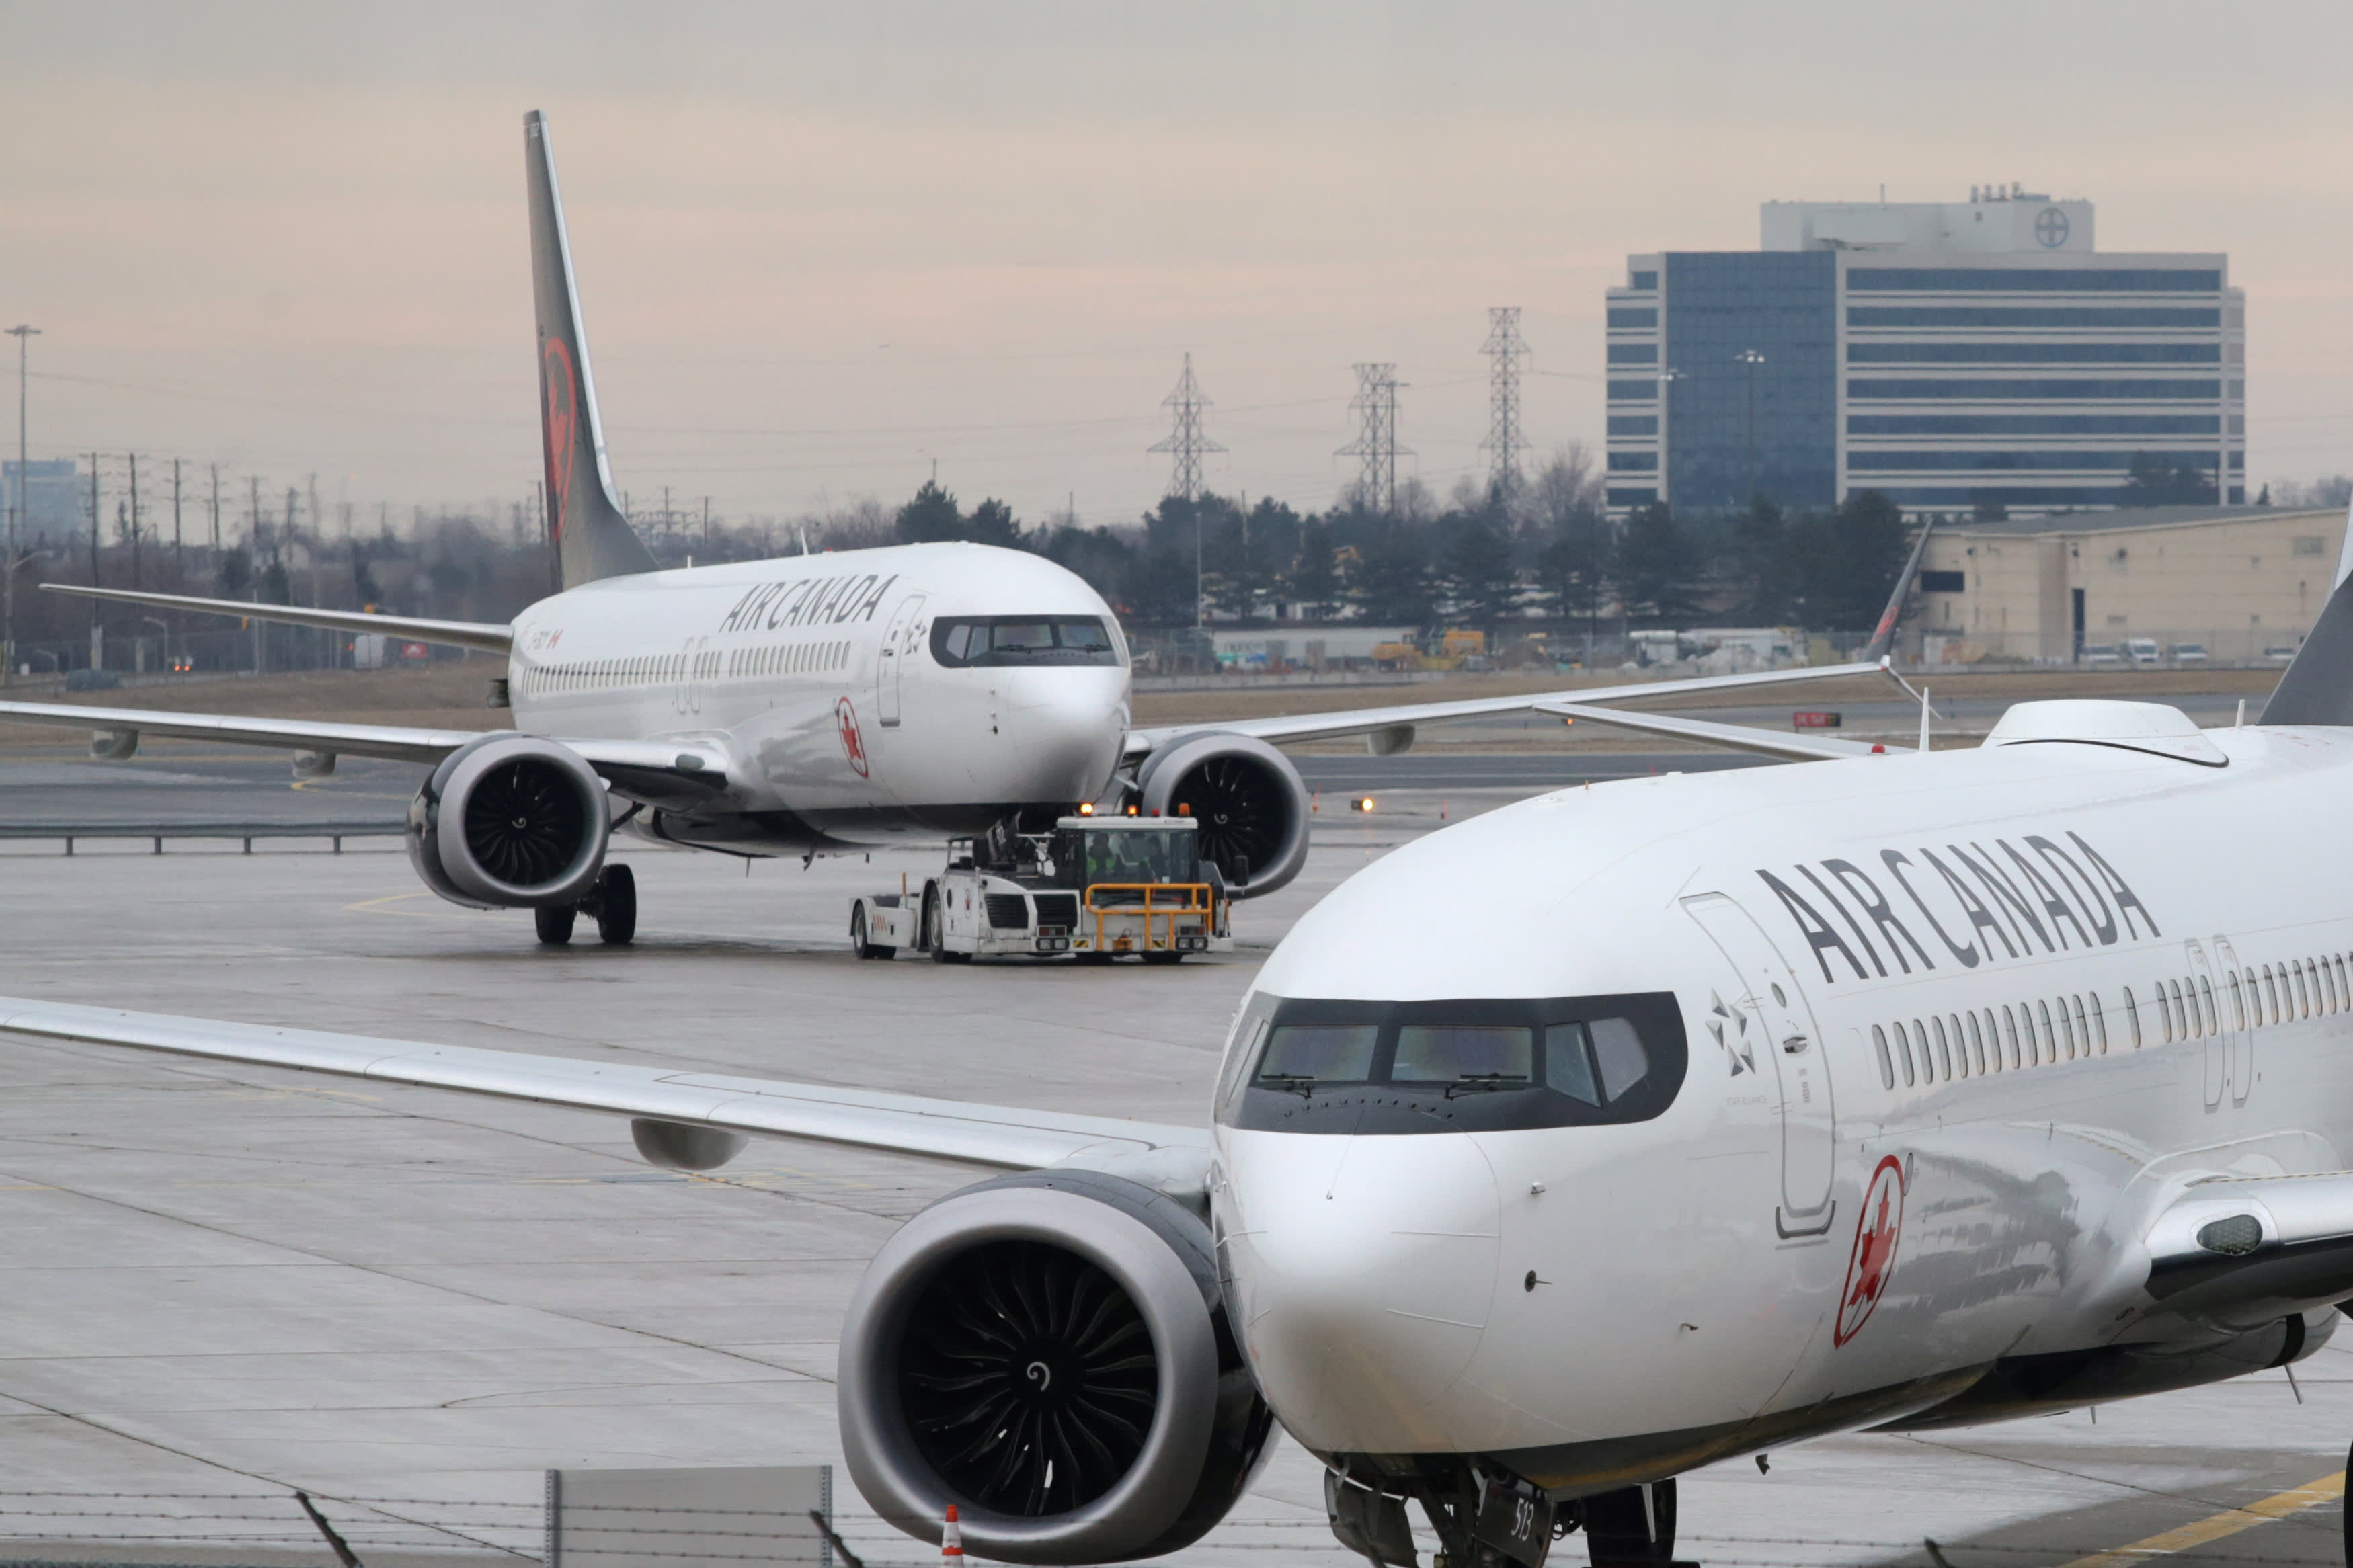 Air Canada Boeing 737 Max Ferry Flight Diverts After Engine Issue Airline company makes charter and regular passenger flights since 1937. air canada boeing 737 max ferry flight